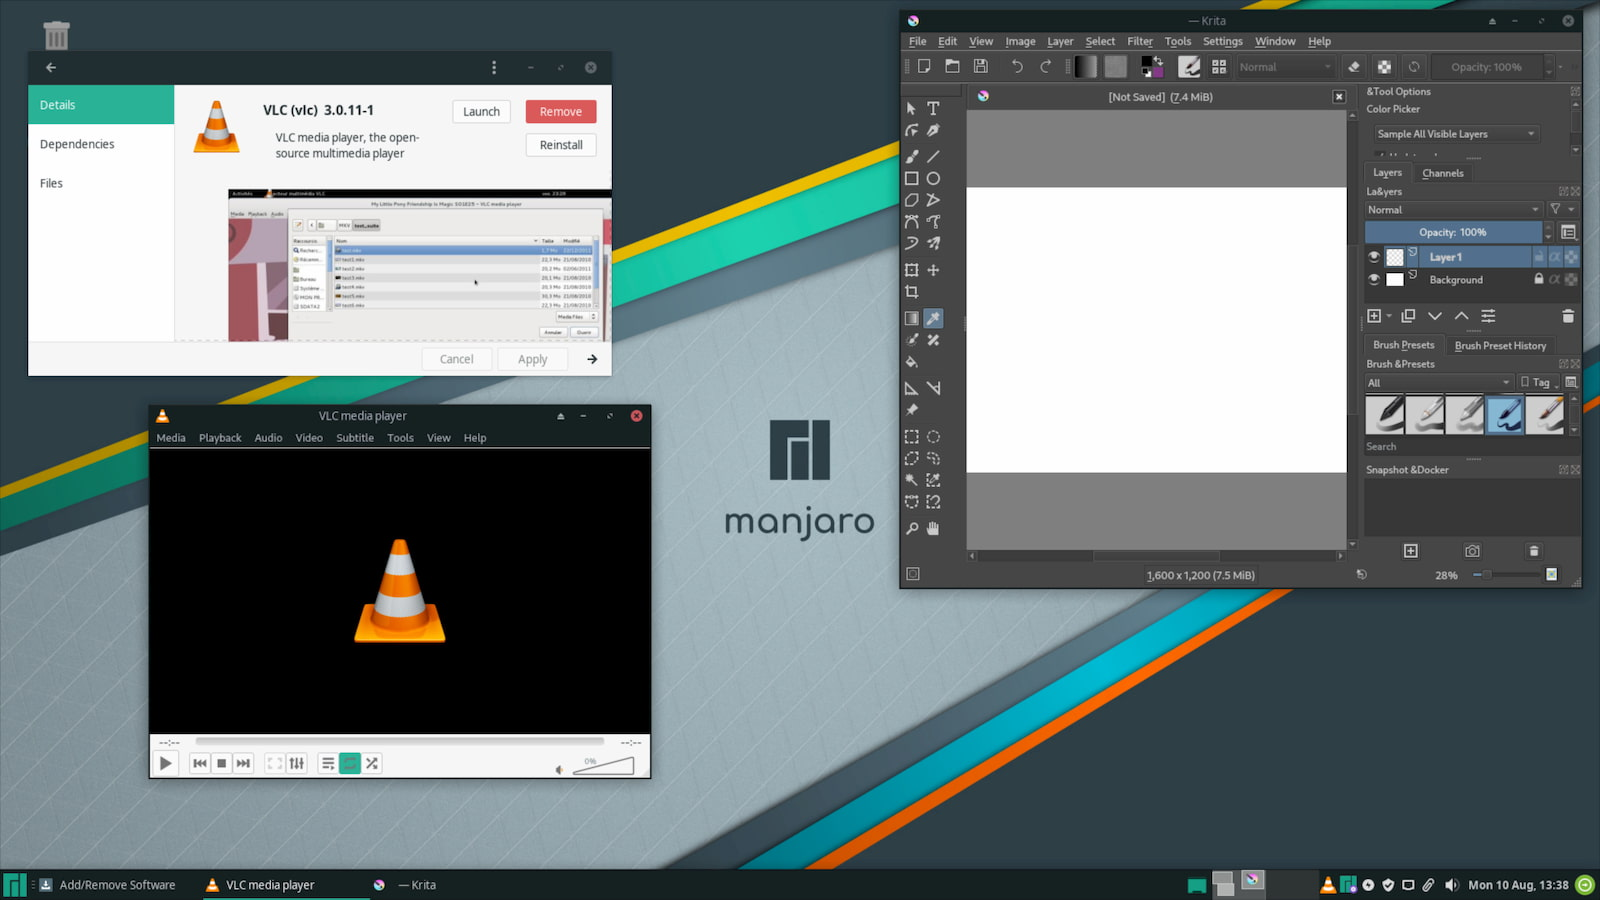 Manjaro Monday: Installing this Arch Linux branch on your Chromebook